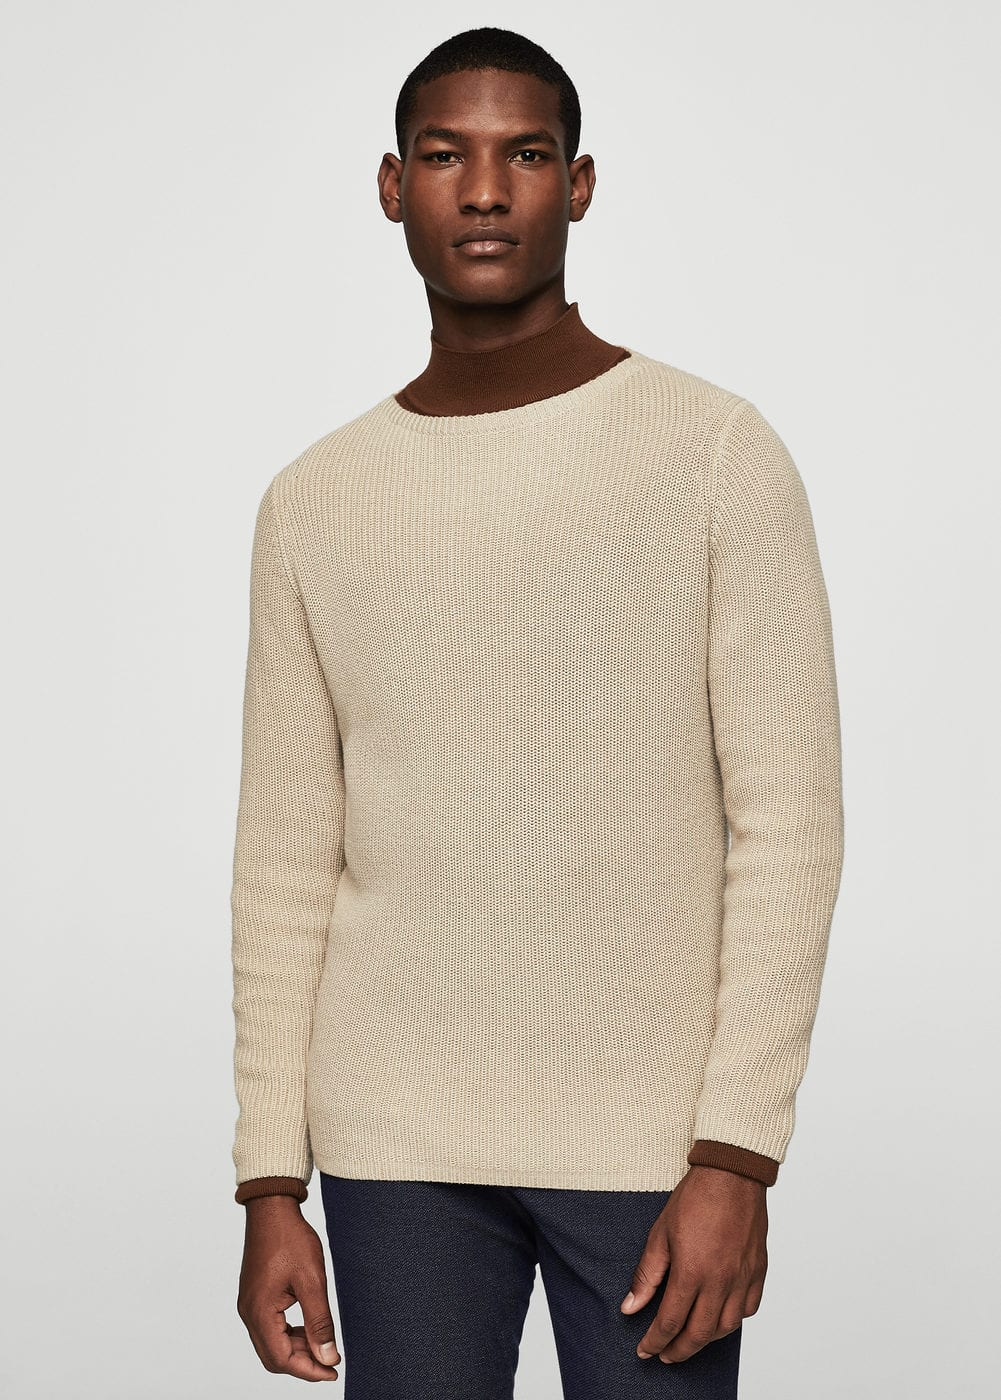 Knitted braided cotton linen sweater | MANGO MAN